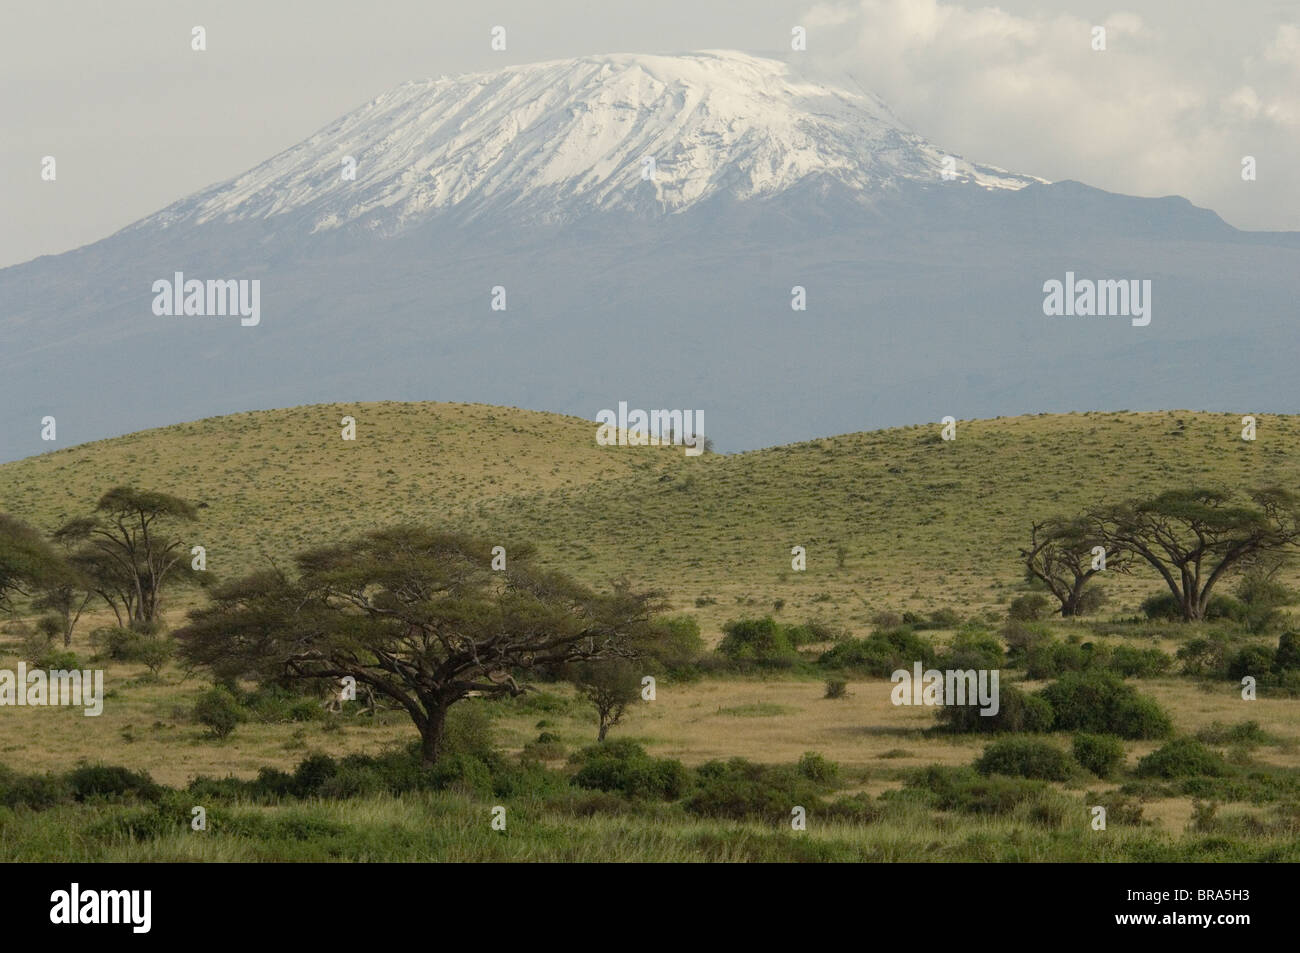 SNOW CAPPED MOUNT KILIMANJARO WITH ACACIA TREES IN FOREGROUND AMBOSELI NATIONAL PARK KENYA AFRICA - Stock Image